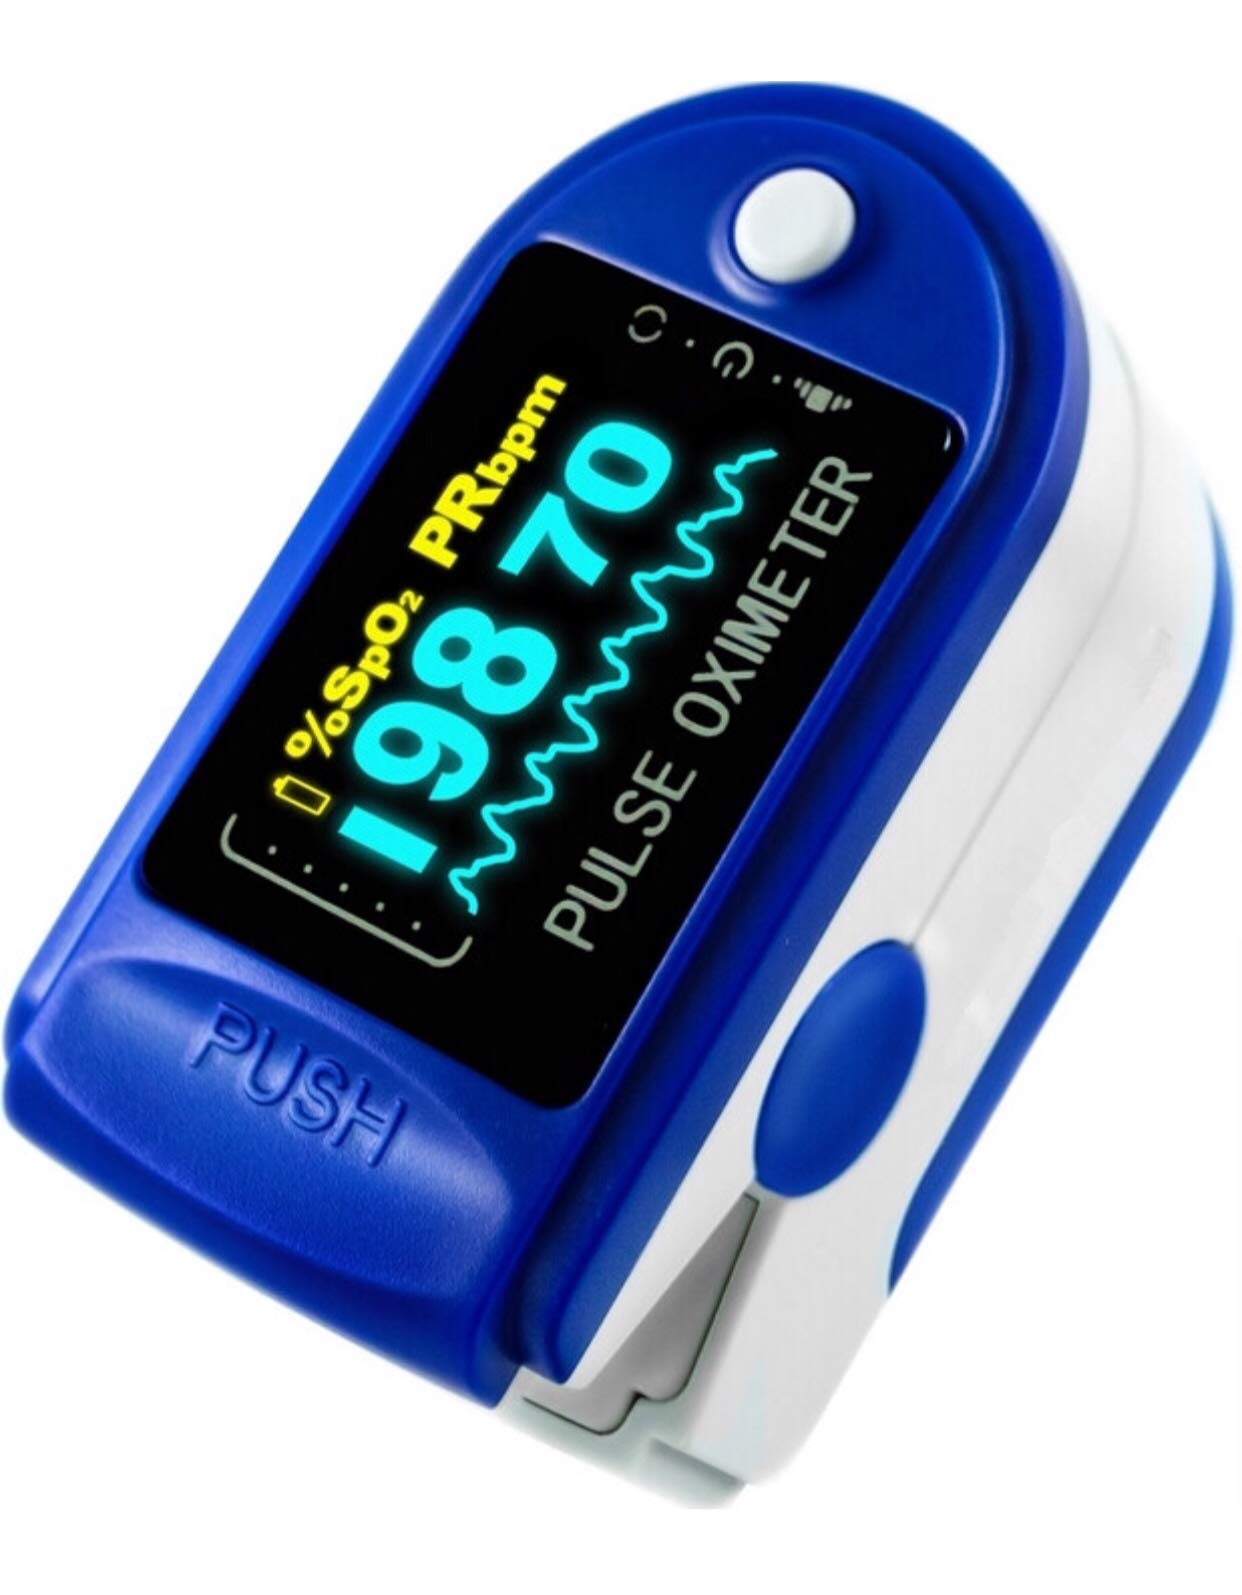 Fingertip Pulse Oximeter, Oxygen Saturation Monitor with Colour Display - Lanyard and Batteries (FDA Approved)…